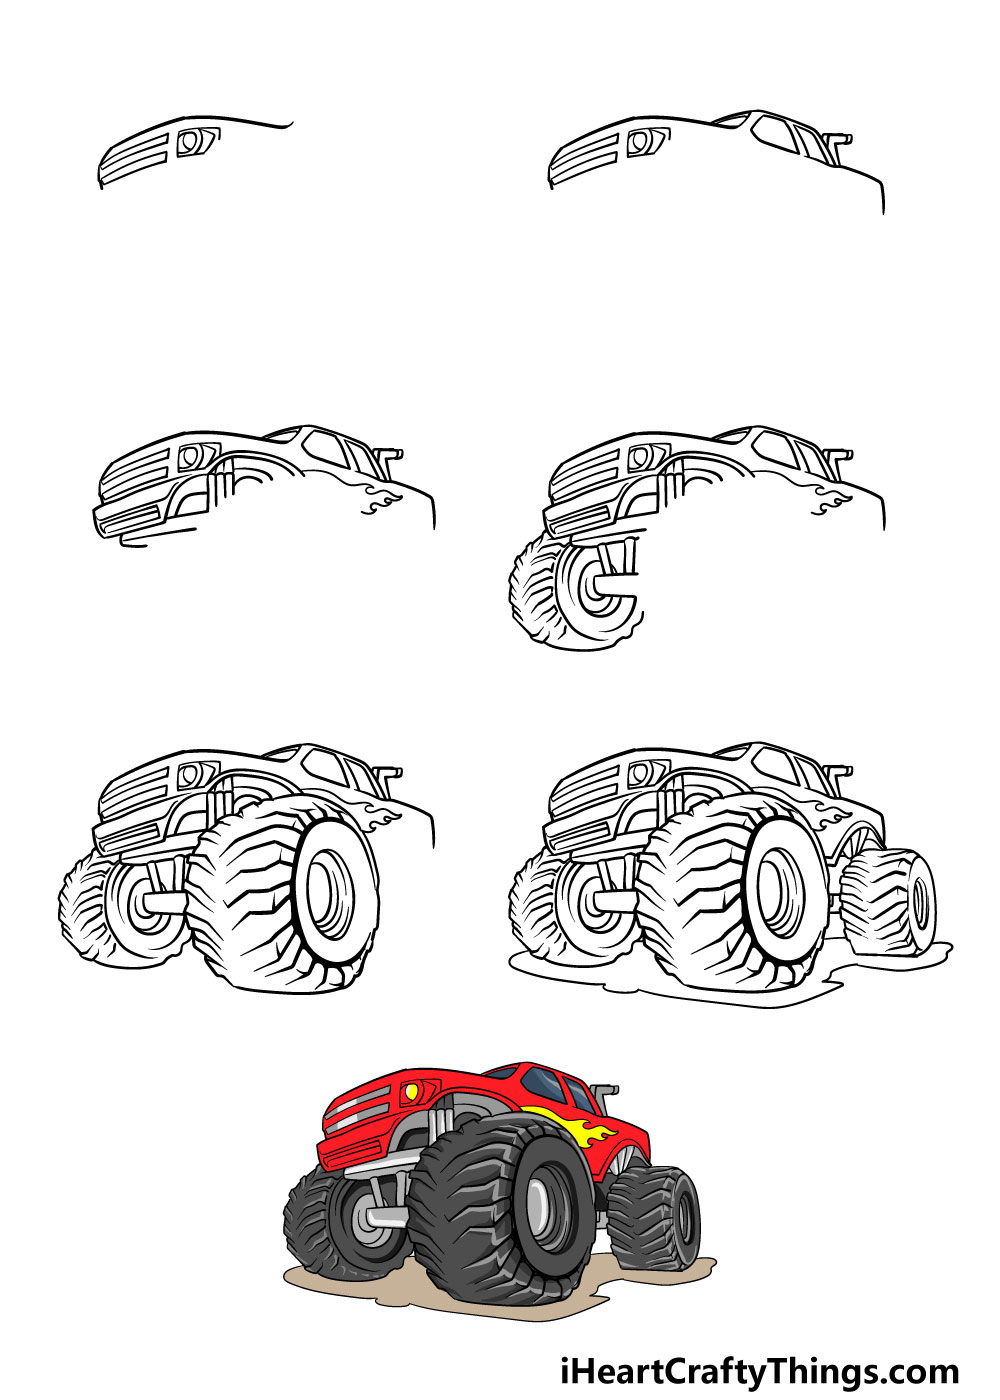 How to Draw A Monster Truck in 7 steps